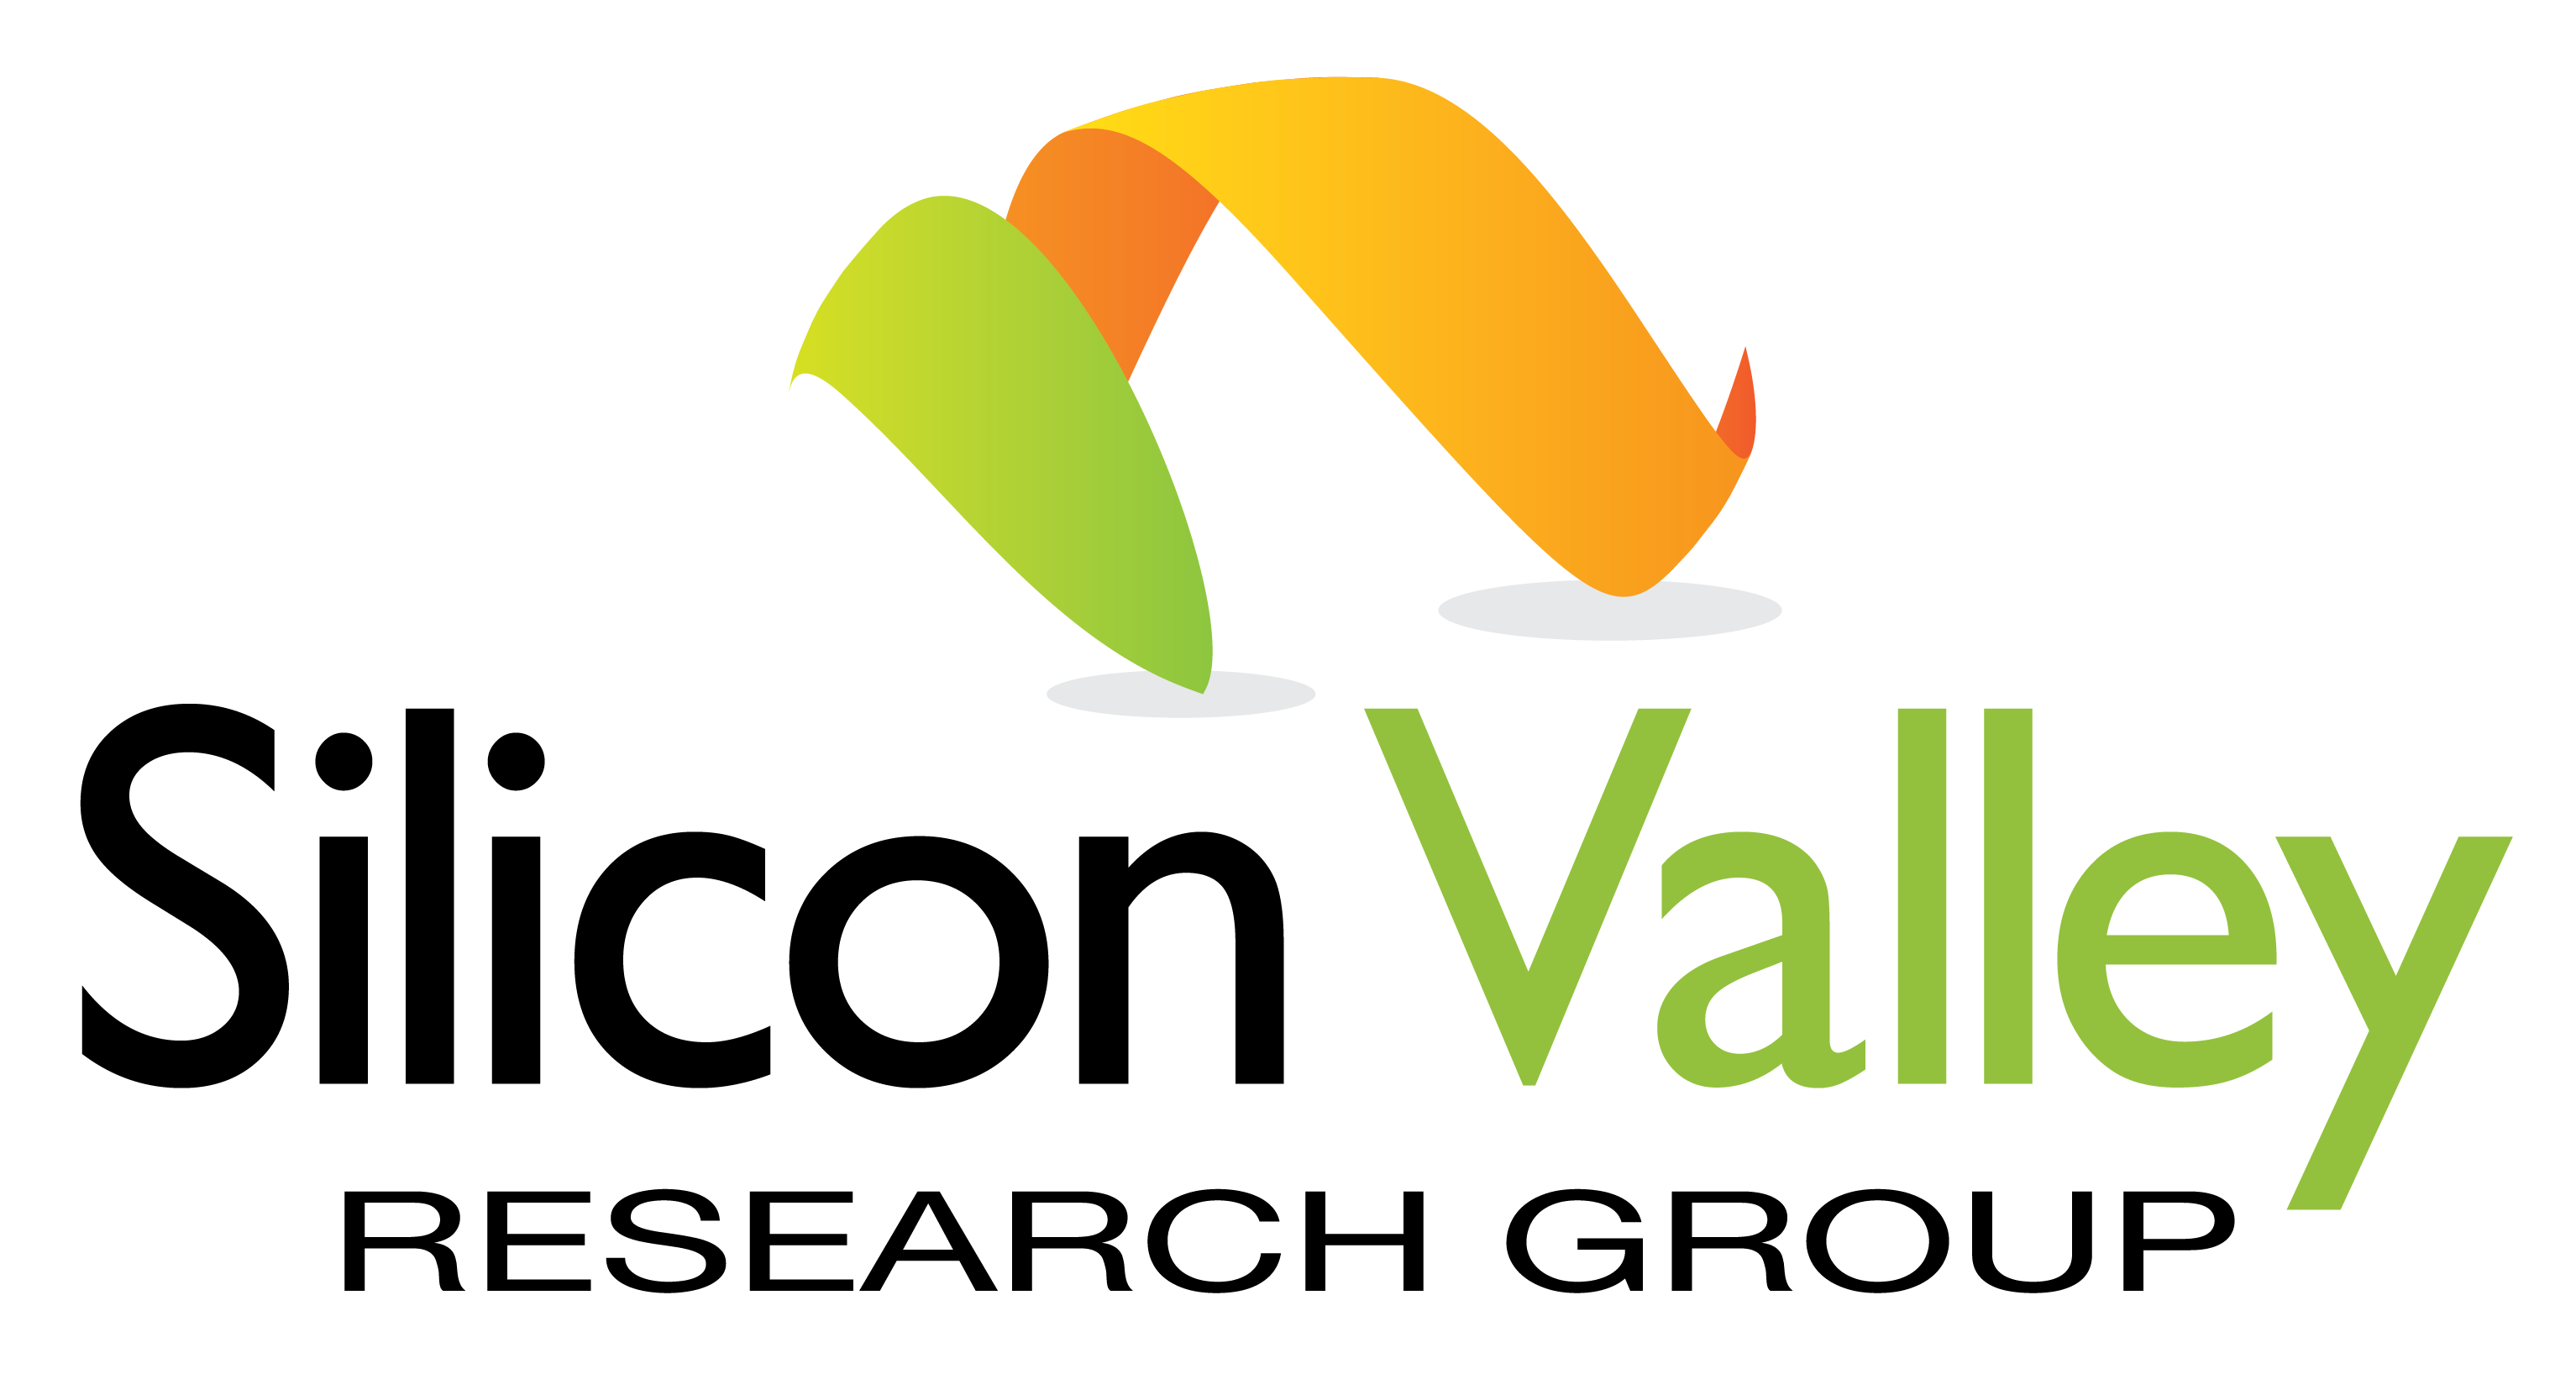 Silicon Valley Research Group technology marketing research firm